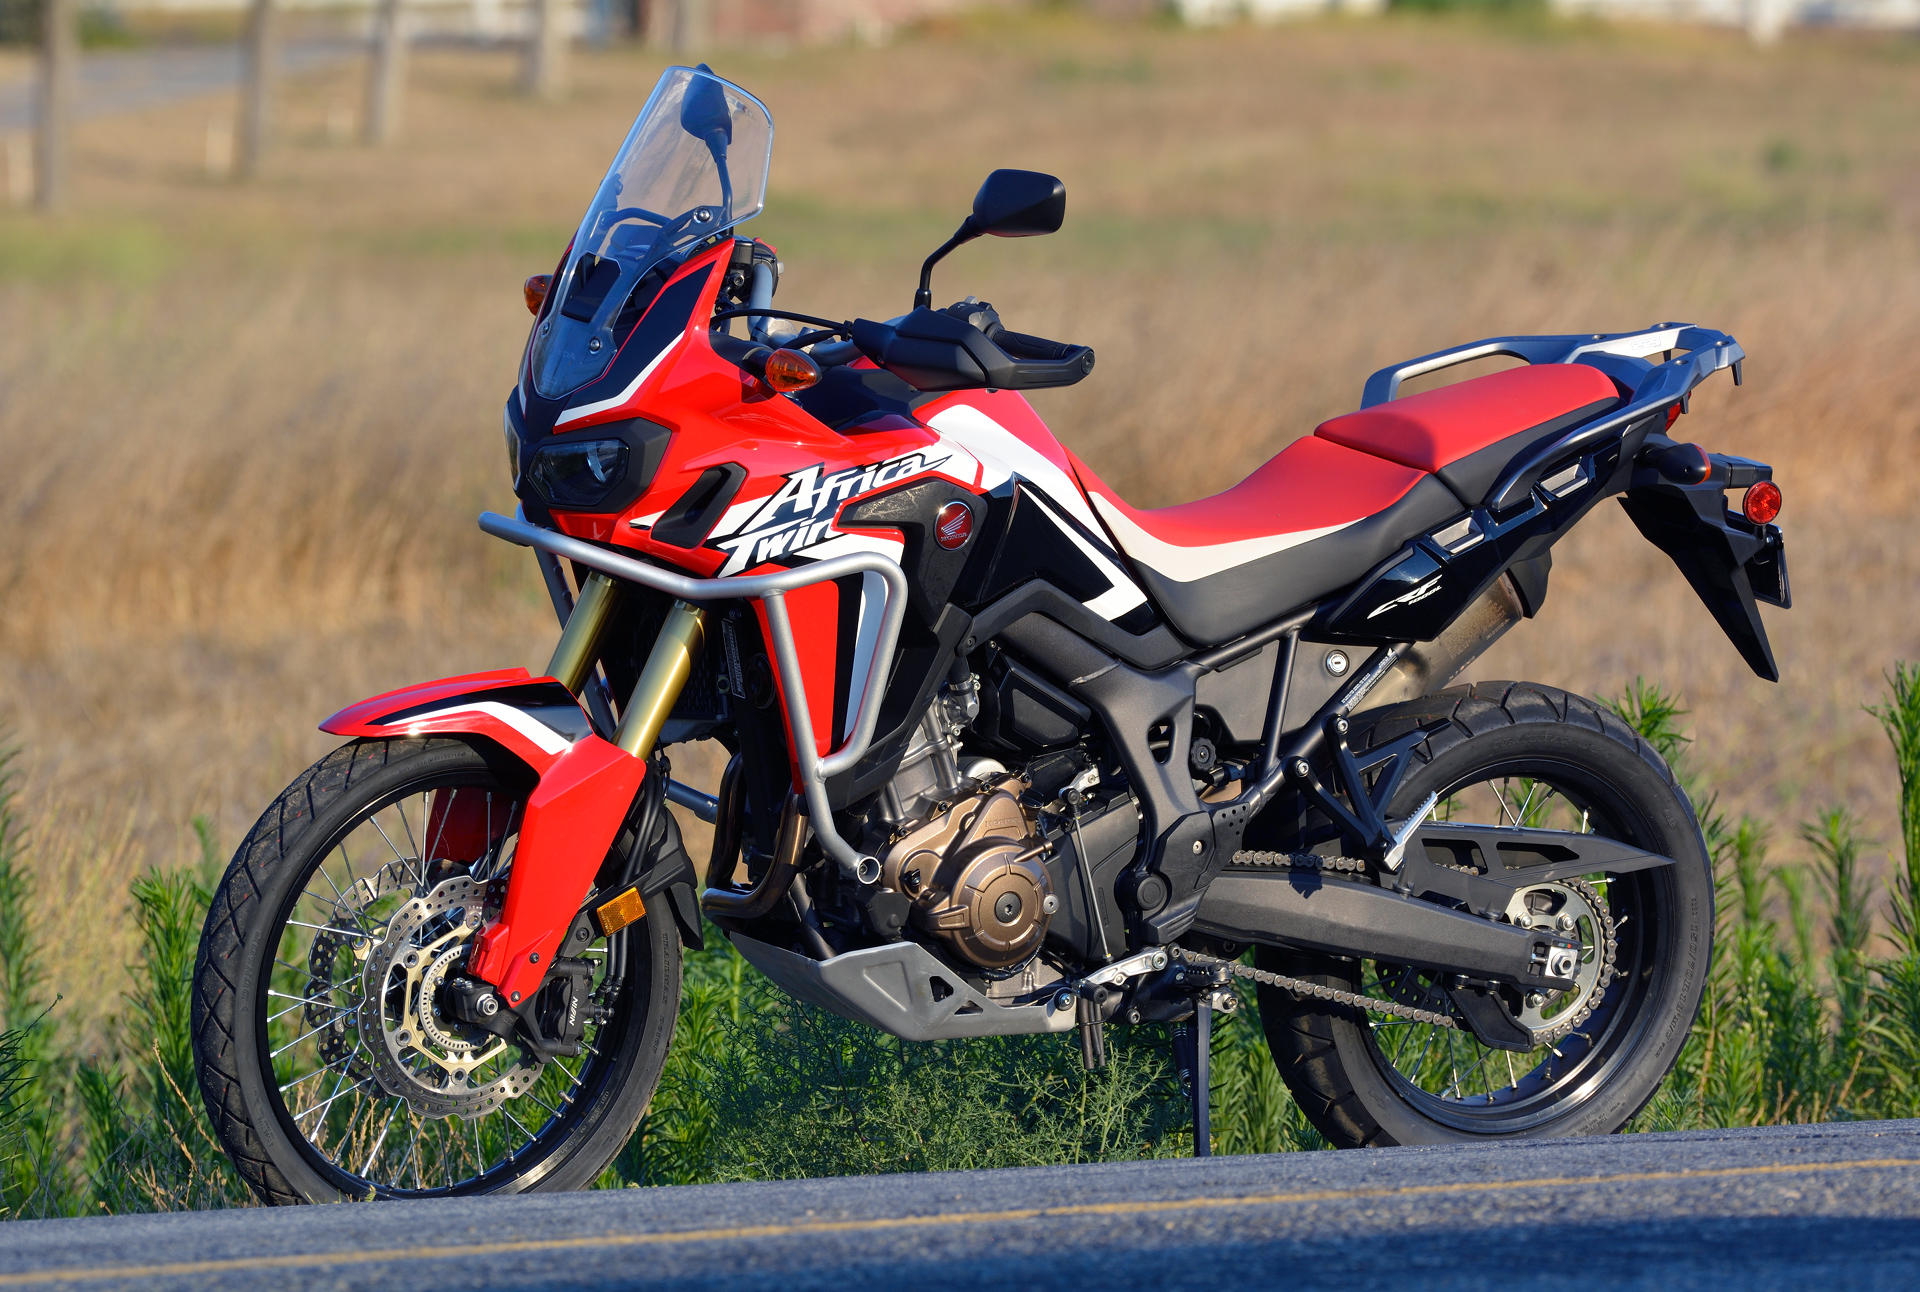 2016 honda africa twin md ride review with video motorcycle news. Black Bedroom Furniture Sets. Home Design Ideas